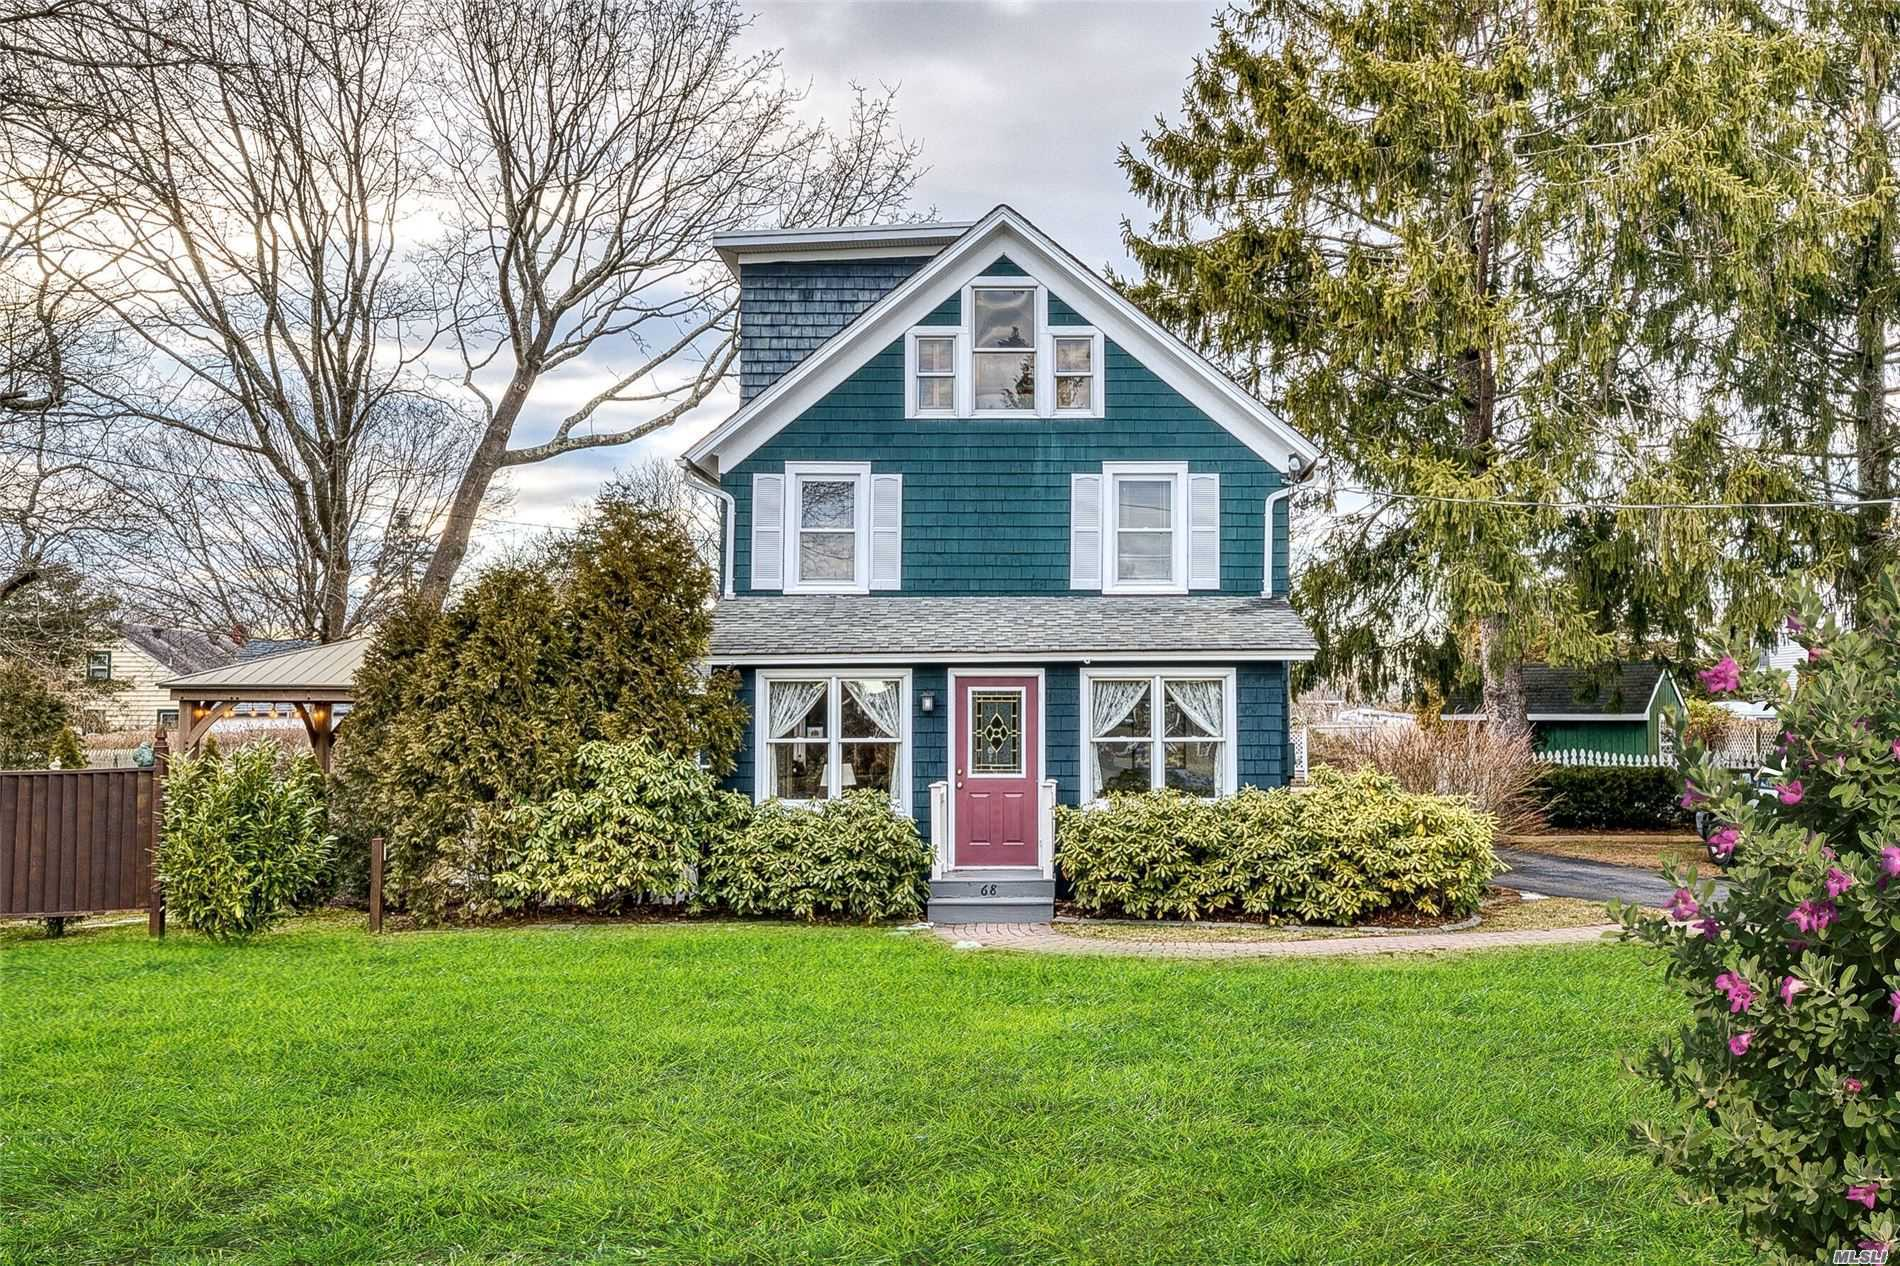 This Charming Home in The Heart of Center Moriches Has a Great Layout with lots of Natural Light. Features Include: Updated EIK, Heating System and Electric, Pine floors under most of the flooring in the house, Basement, In ground sprinklers, 4 Car Garage, Beautifully landscaped yard. Close to town, shopping, restaurants, beaches. Call Today!!!